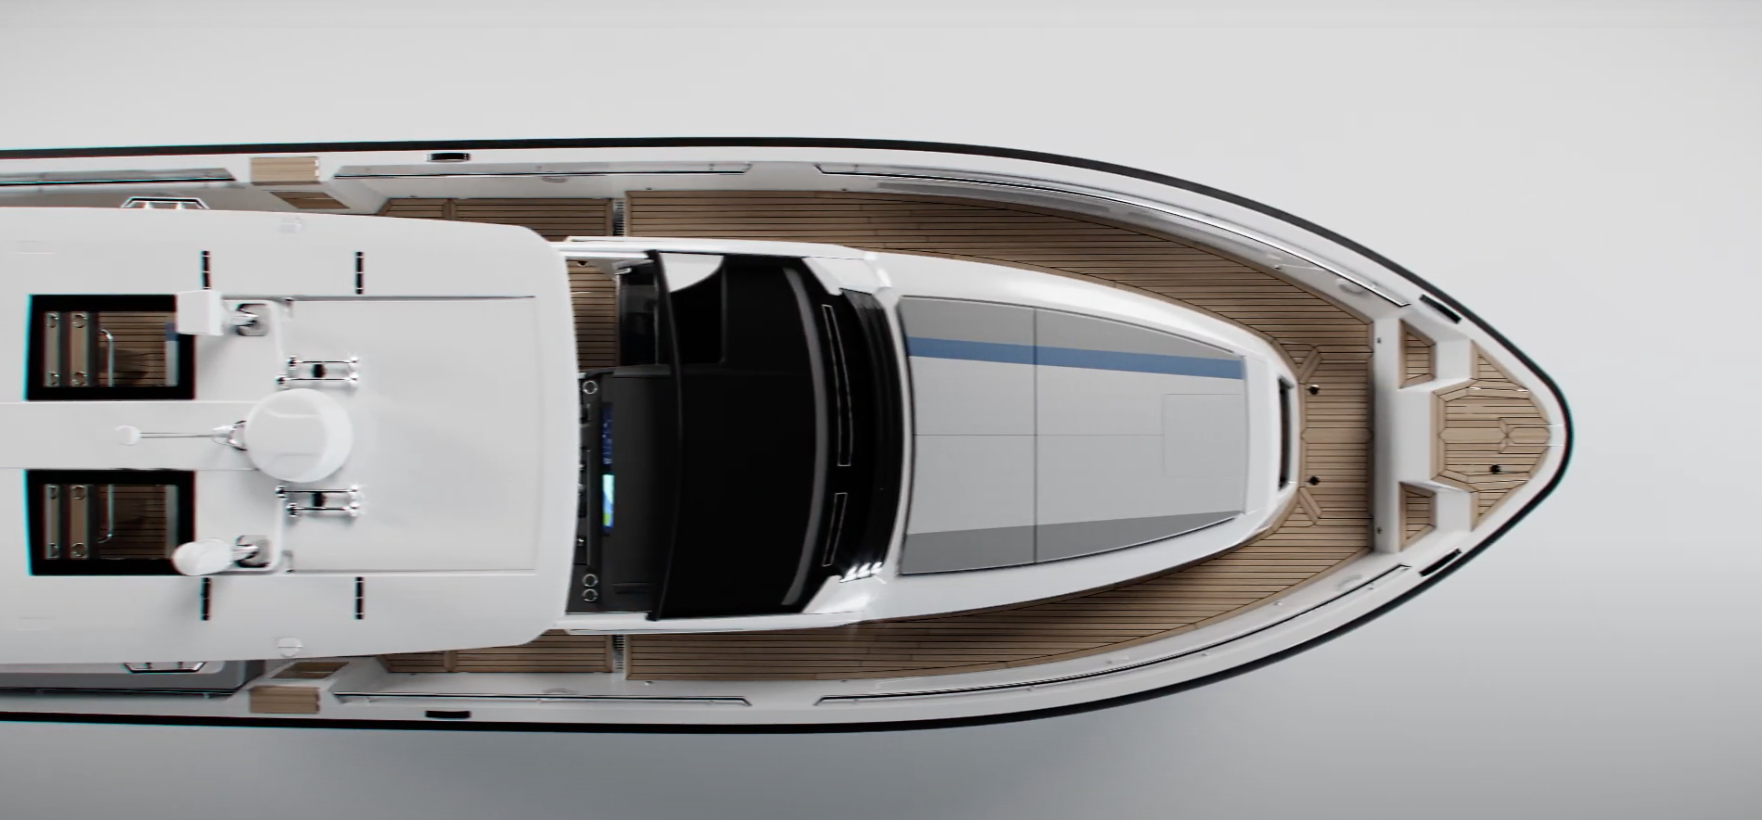 The new windy SR44 SX to be launched at the 2021 Fort Lauderdale International Boat Show, October 27th - 31st.